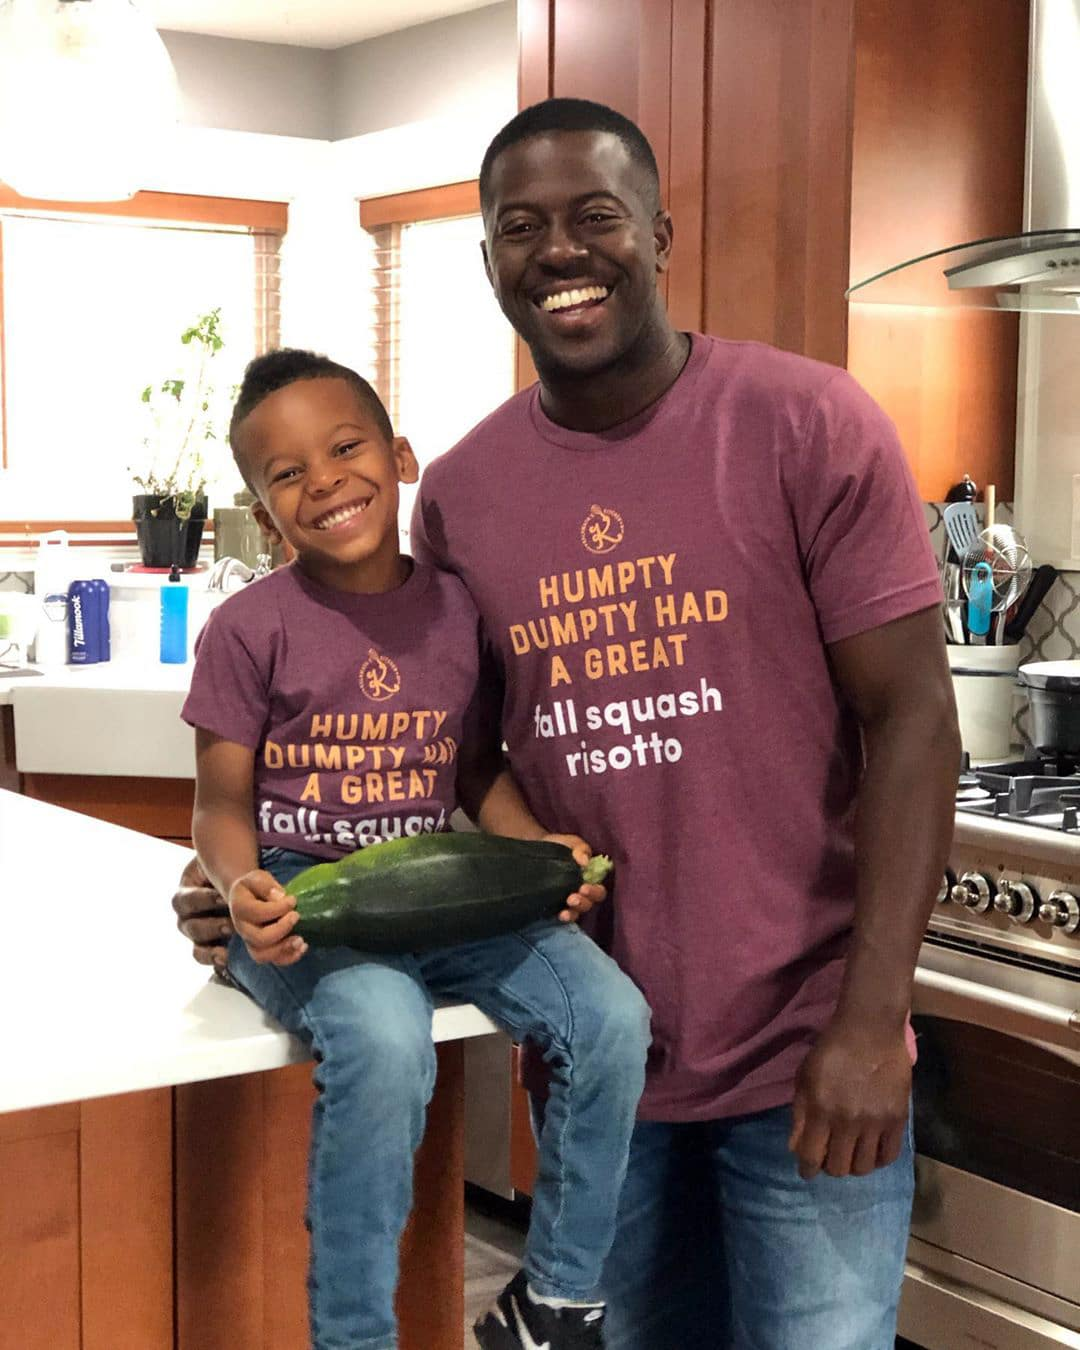 Edouardo Jordan and his son, Akil, pose for a photo in Jordan's kitchen. They wear matching shirts and Akil holds a large green vegetable.